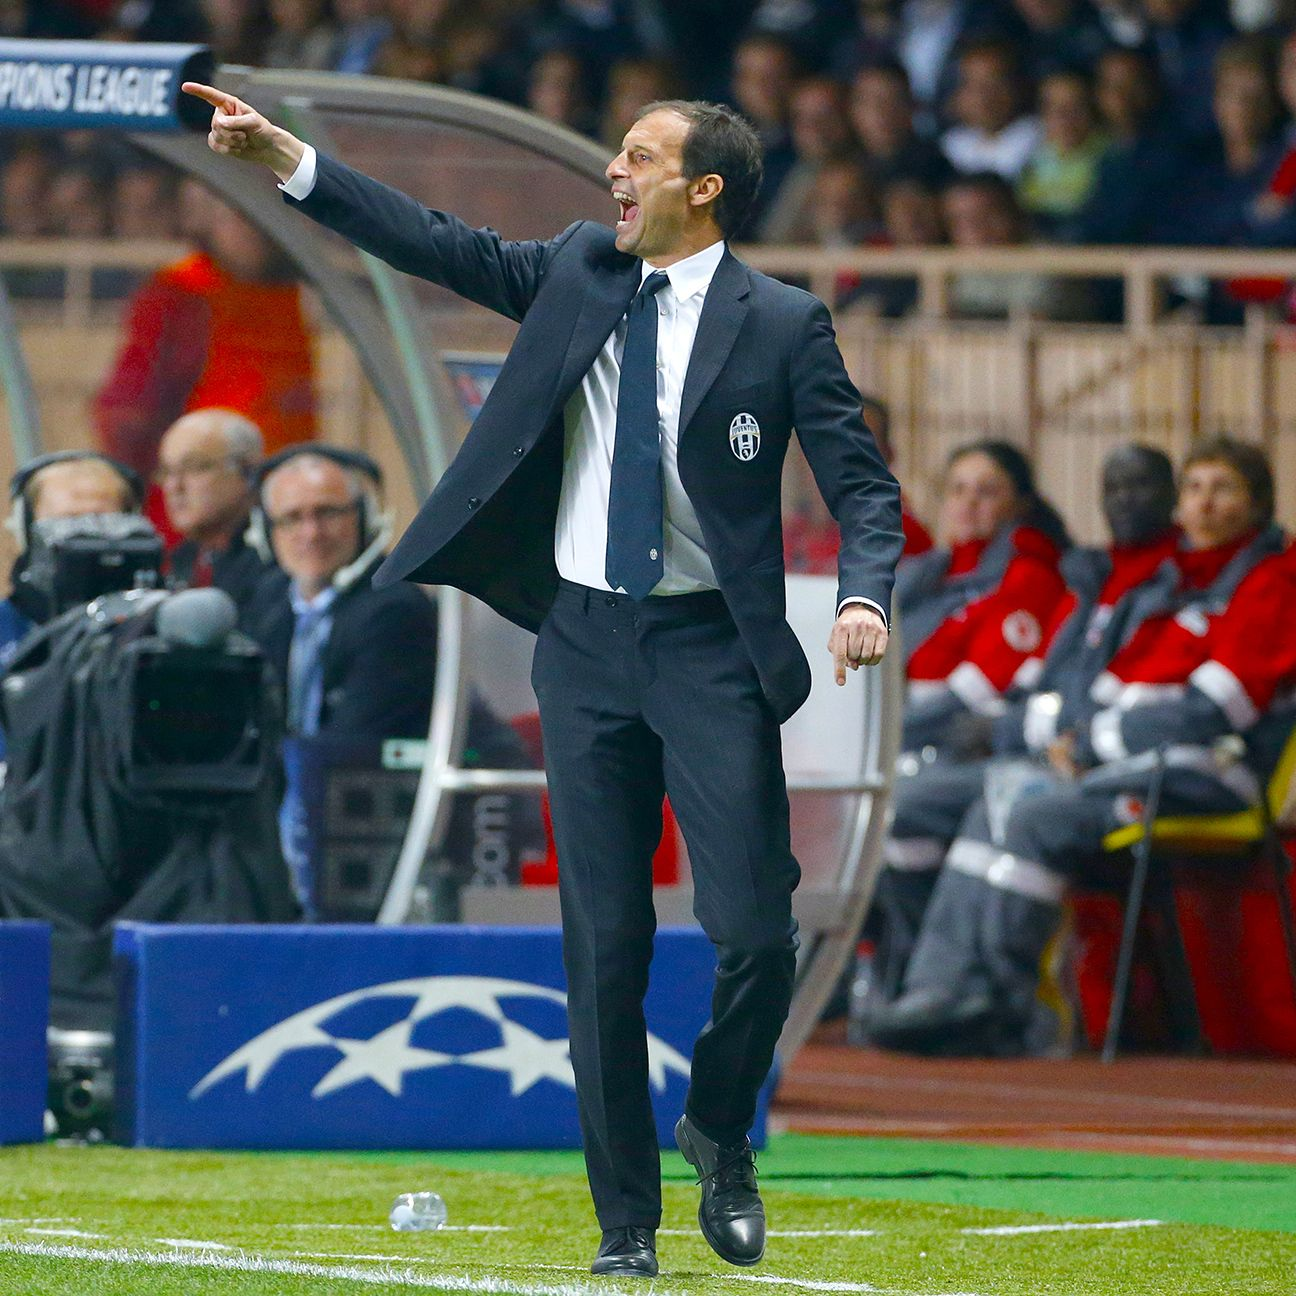 Even with Serie A clinched, Massimiliano Allegri's Juventus will still be out to take all three points against rivals Inter.